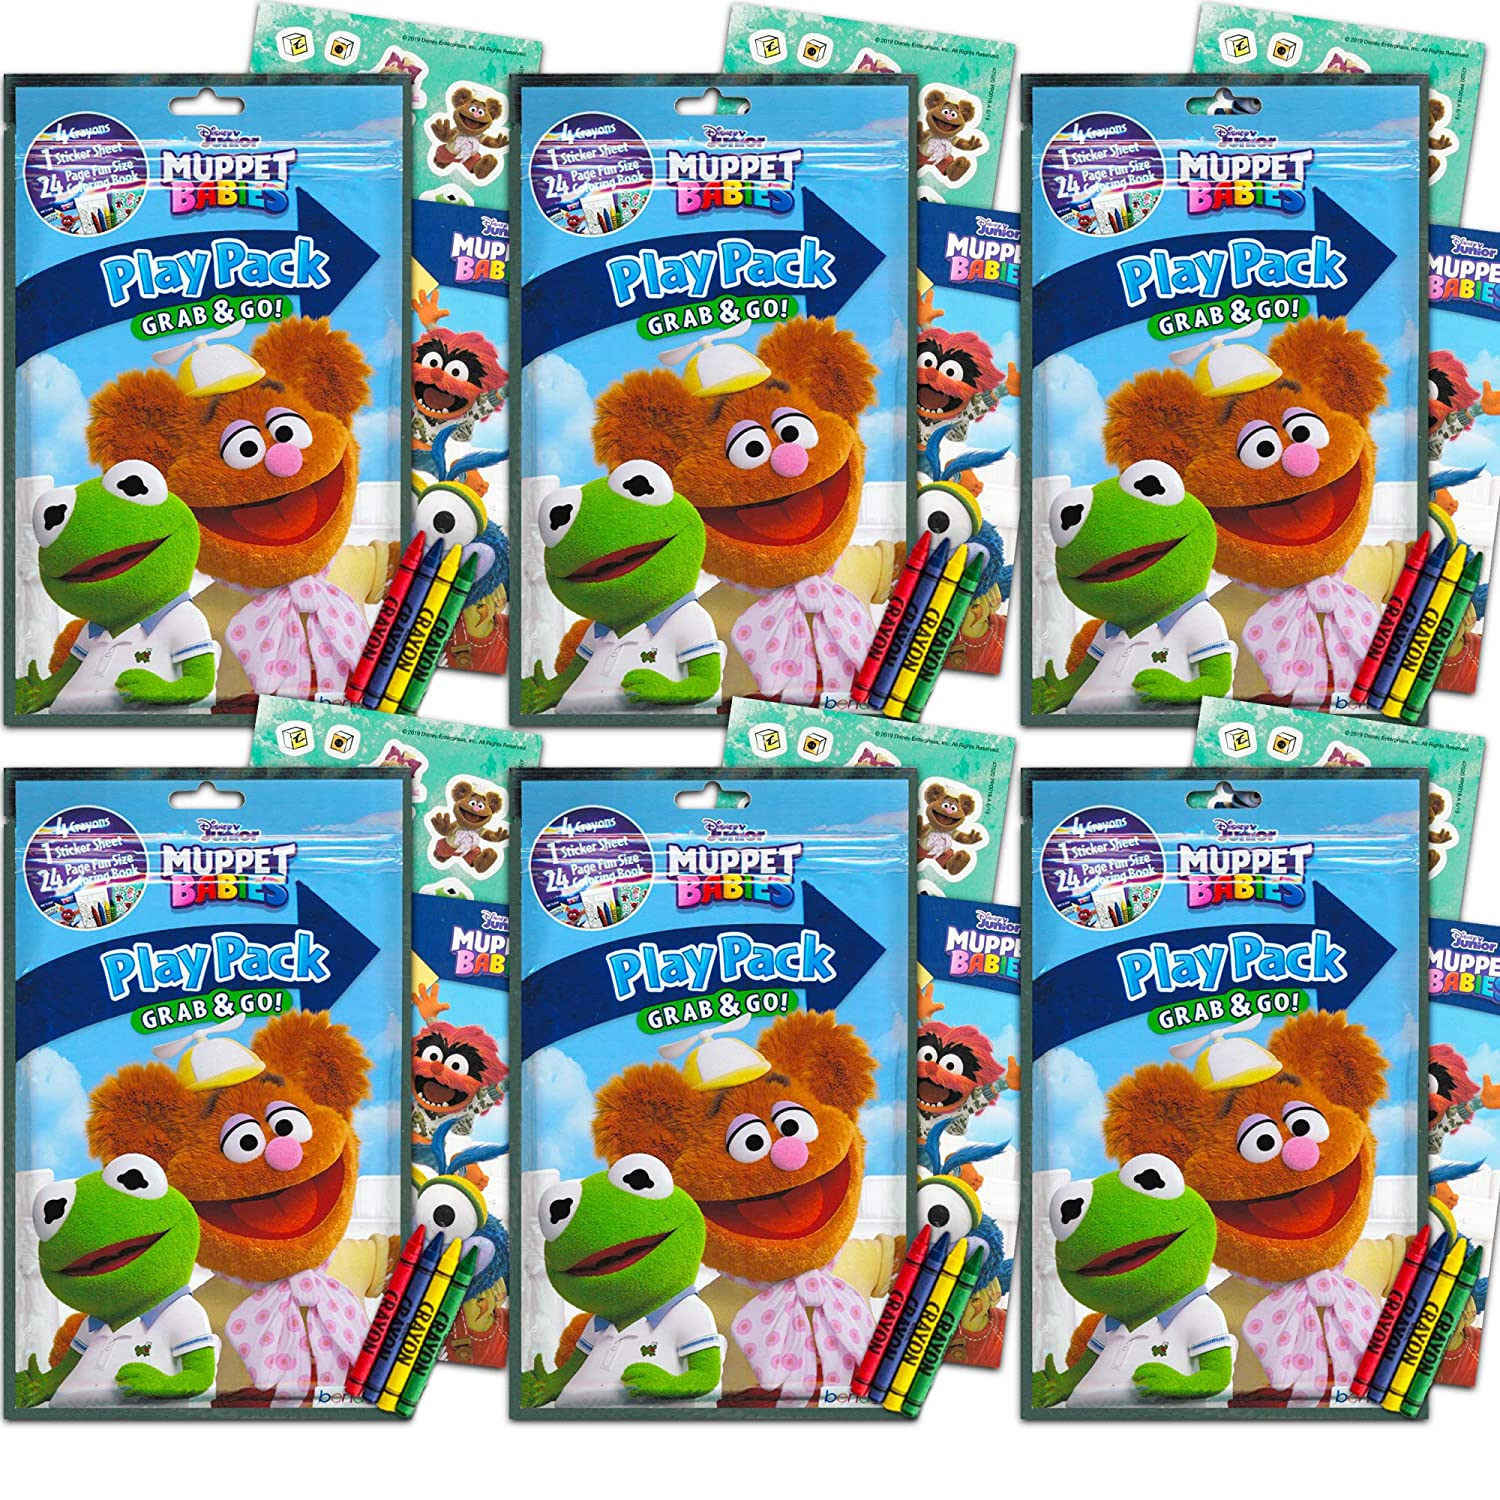 Muppet Babies Party Favors Pack ~ Bundle Of 6 Muppet Babies Play Packs  Filled With Stickers, Coloring Books, And Crayons (Muppet Babies Party  Supplies) - Walmart.com - Walmart.com